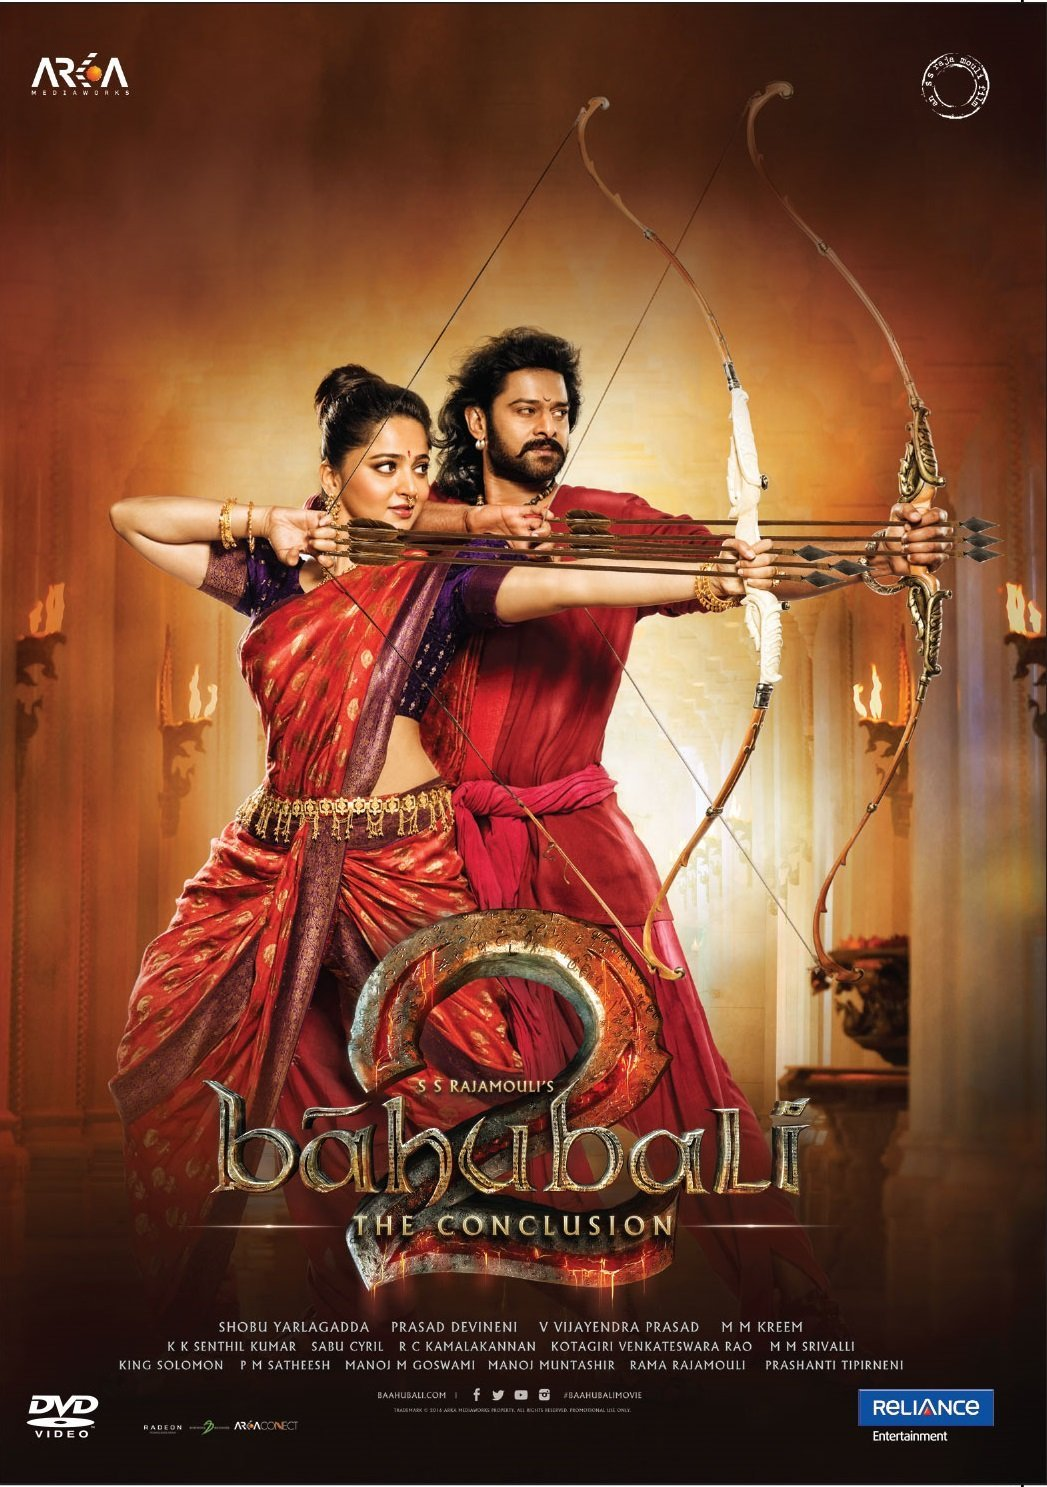 Baahubali 2: The Conclusion (2017) poster image